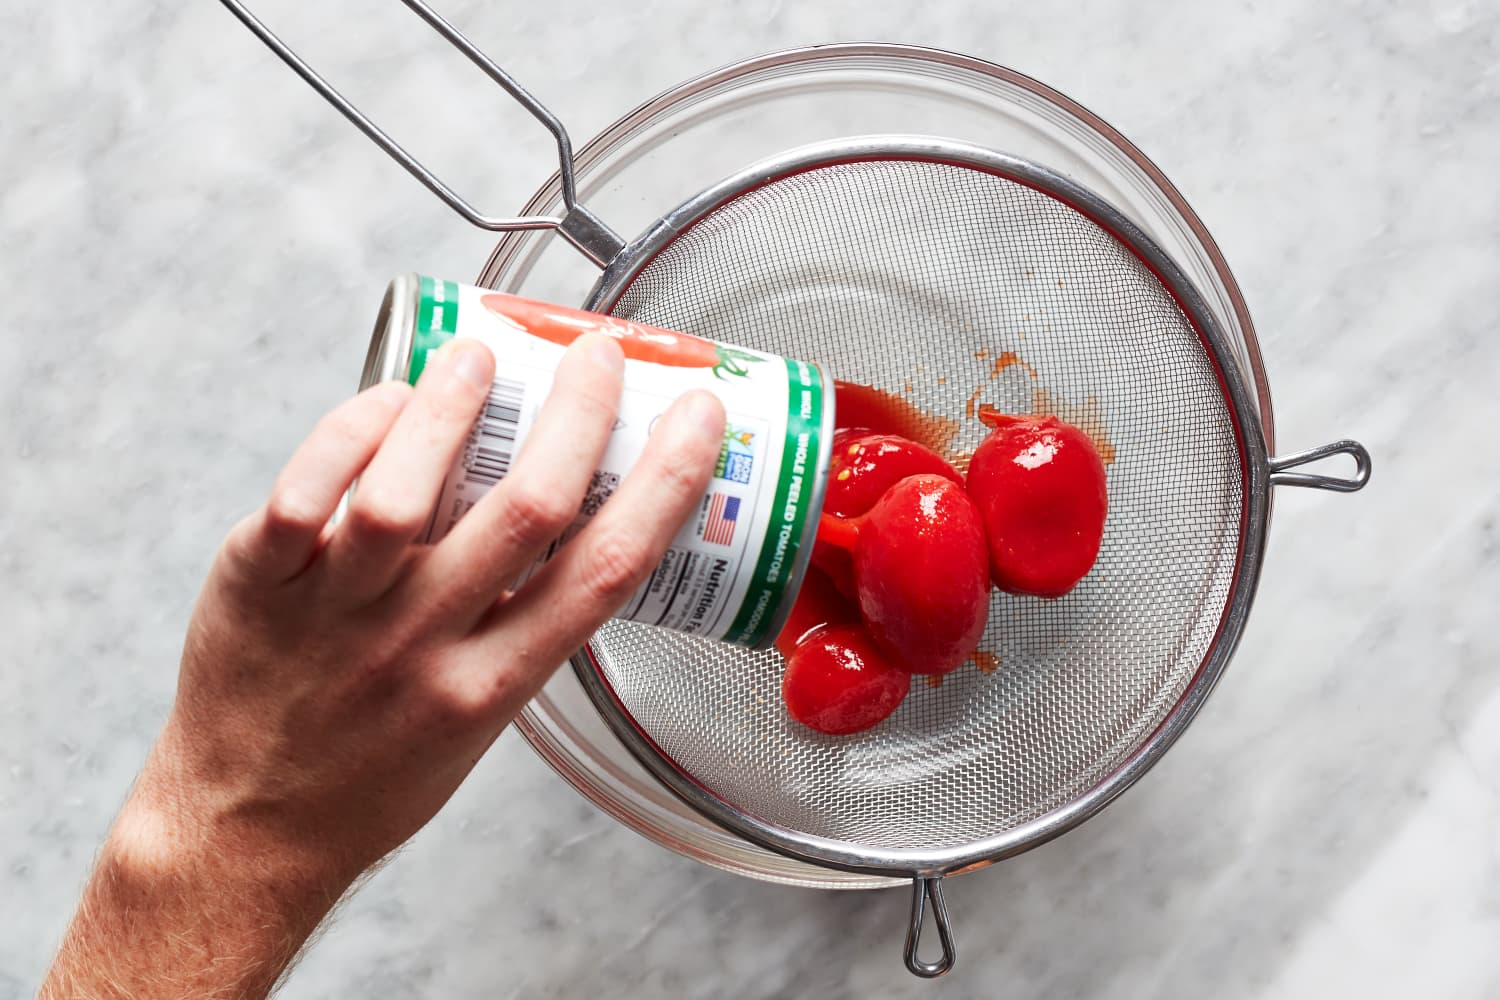 10 Brands of Canned Tomatoes That Professional Chefs Swear By